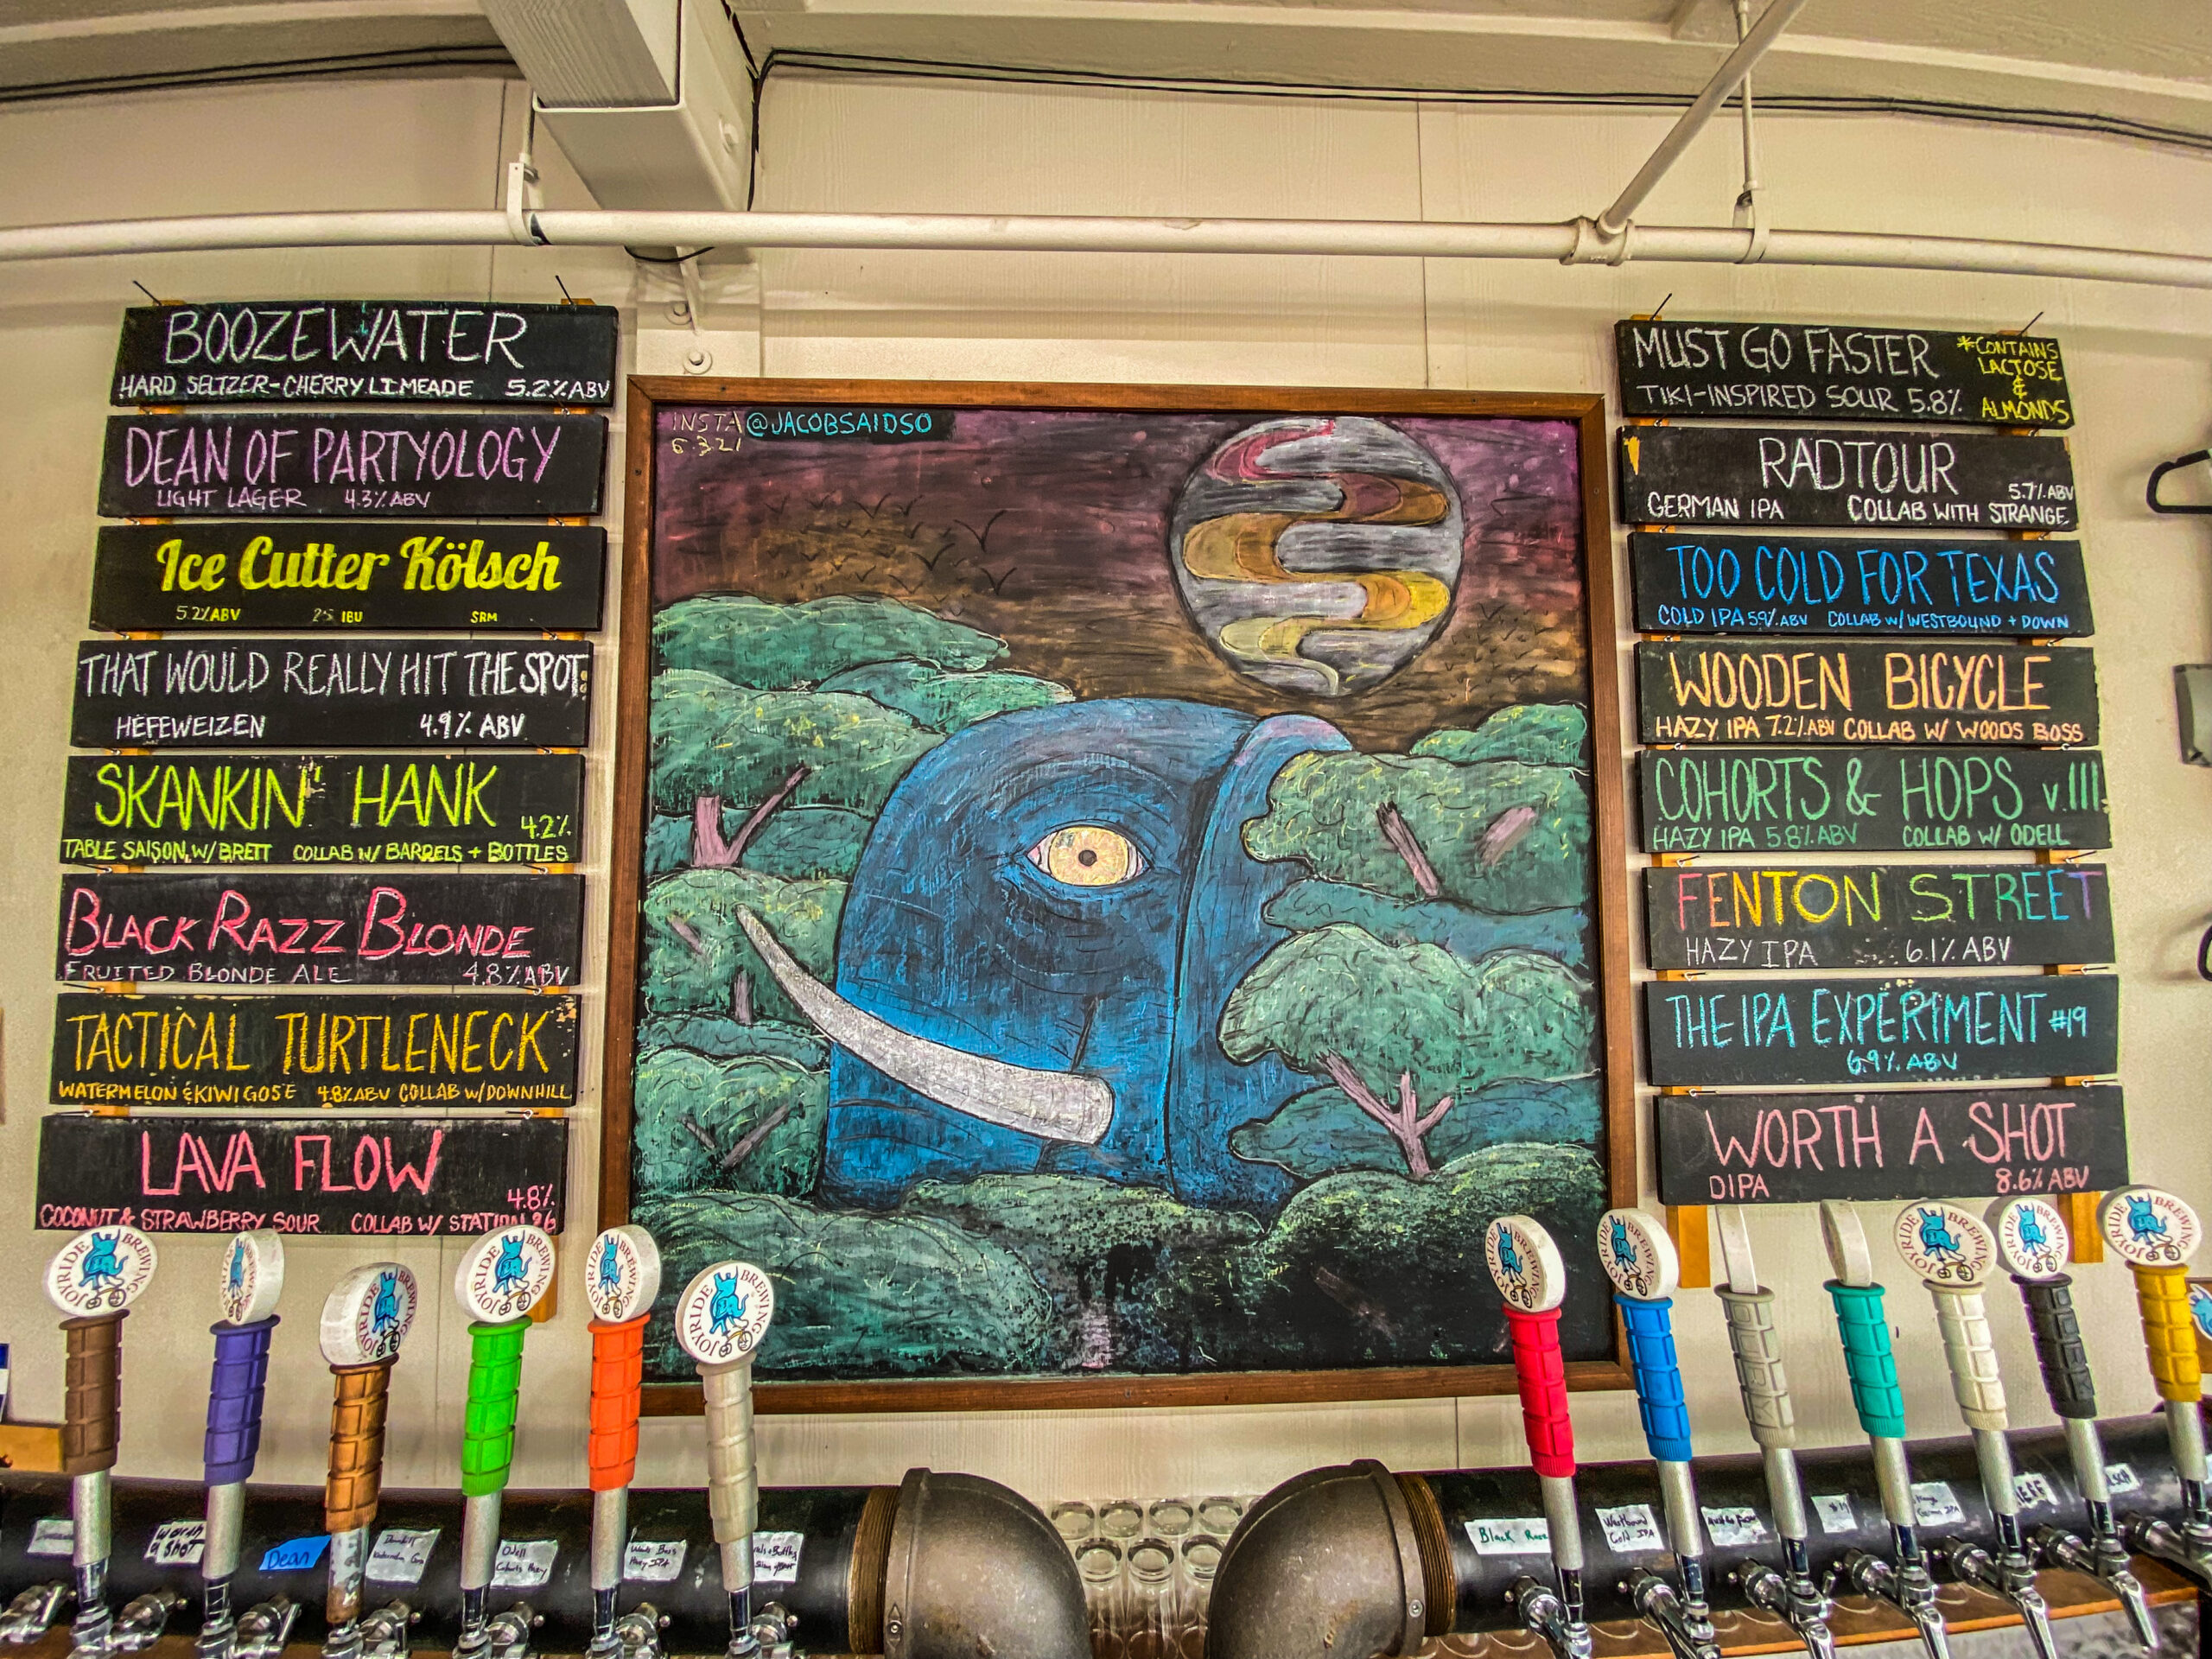 Picture of the taproom beer list chalkboard